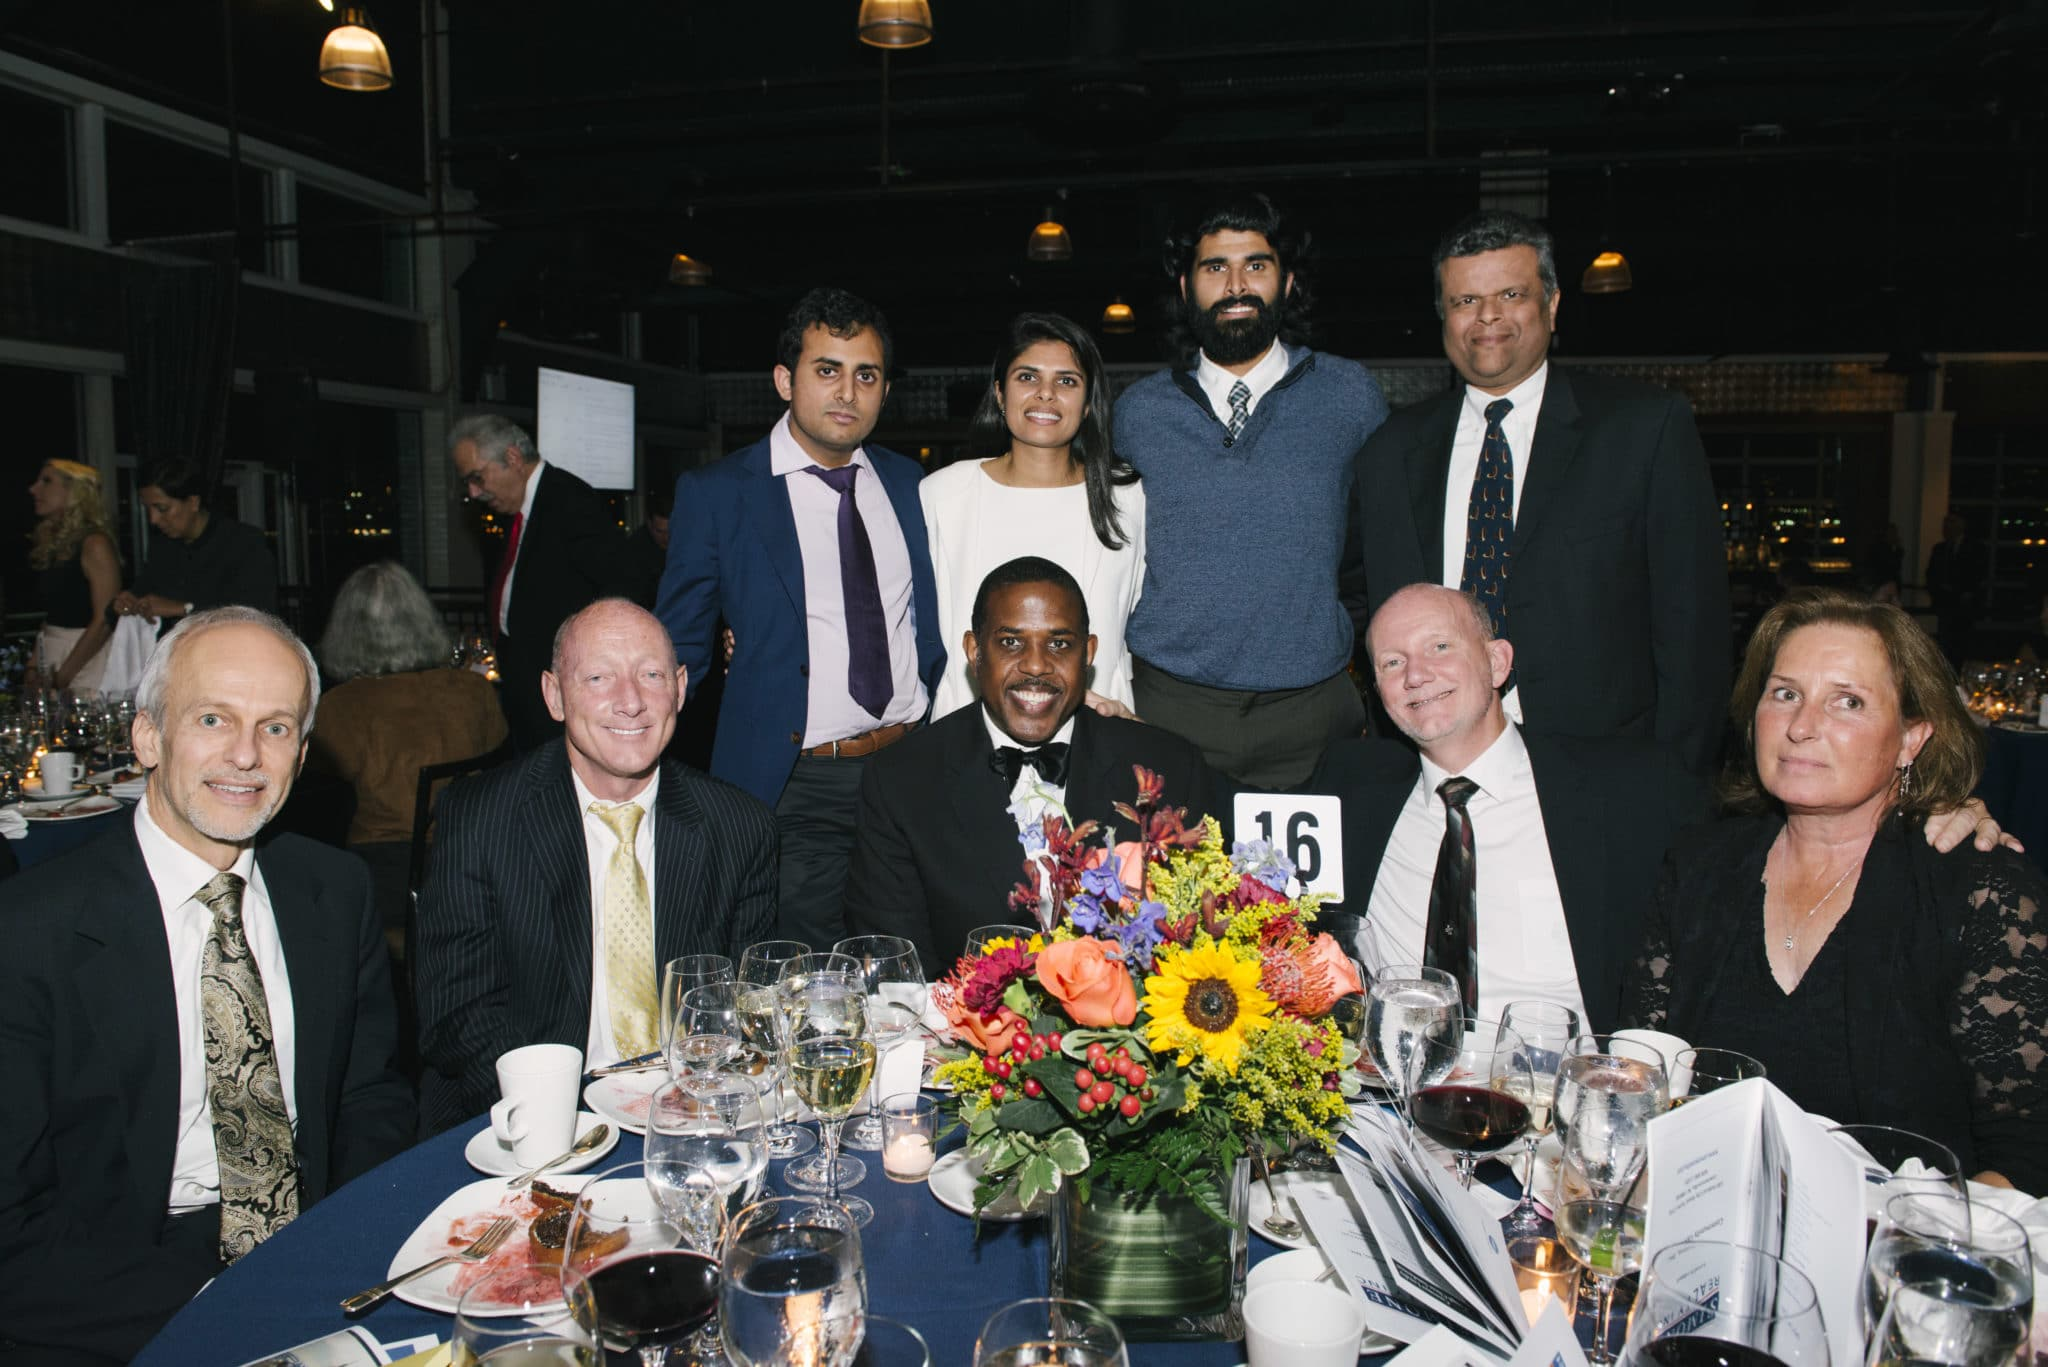 A Celebration of Community Options' 20 years of service in New York City. Gala held Thursday, October 6, 2016 at The Lighthouse at Chelsea Piers in New York, NY.